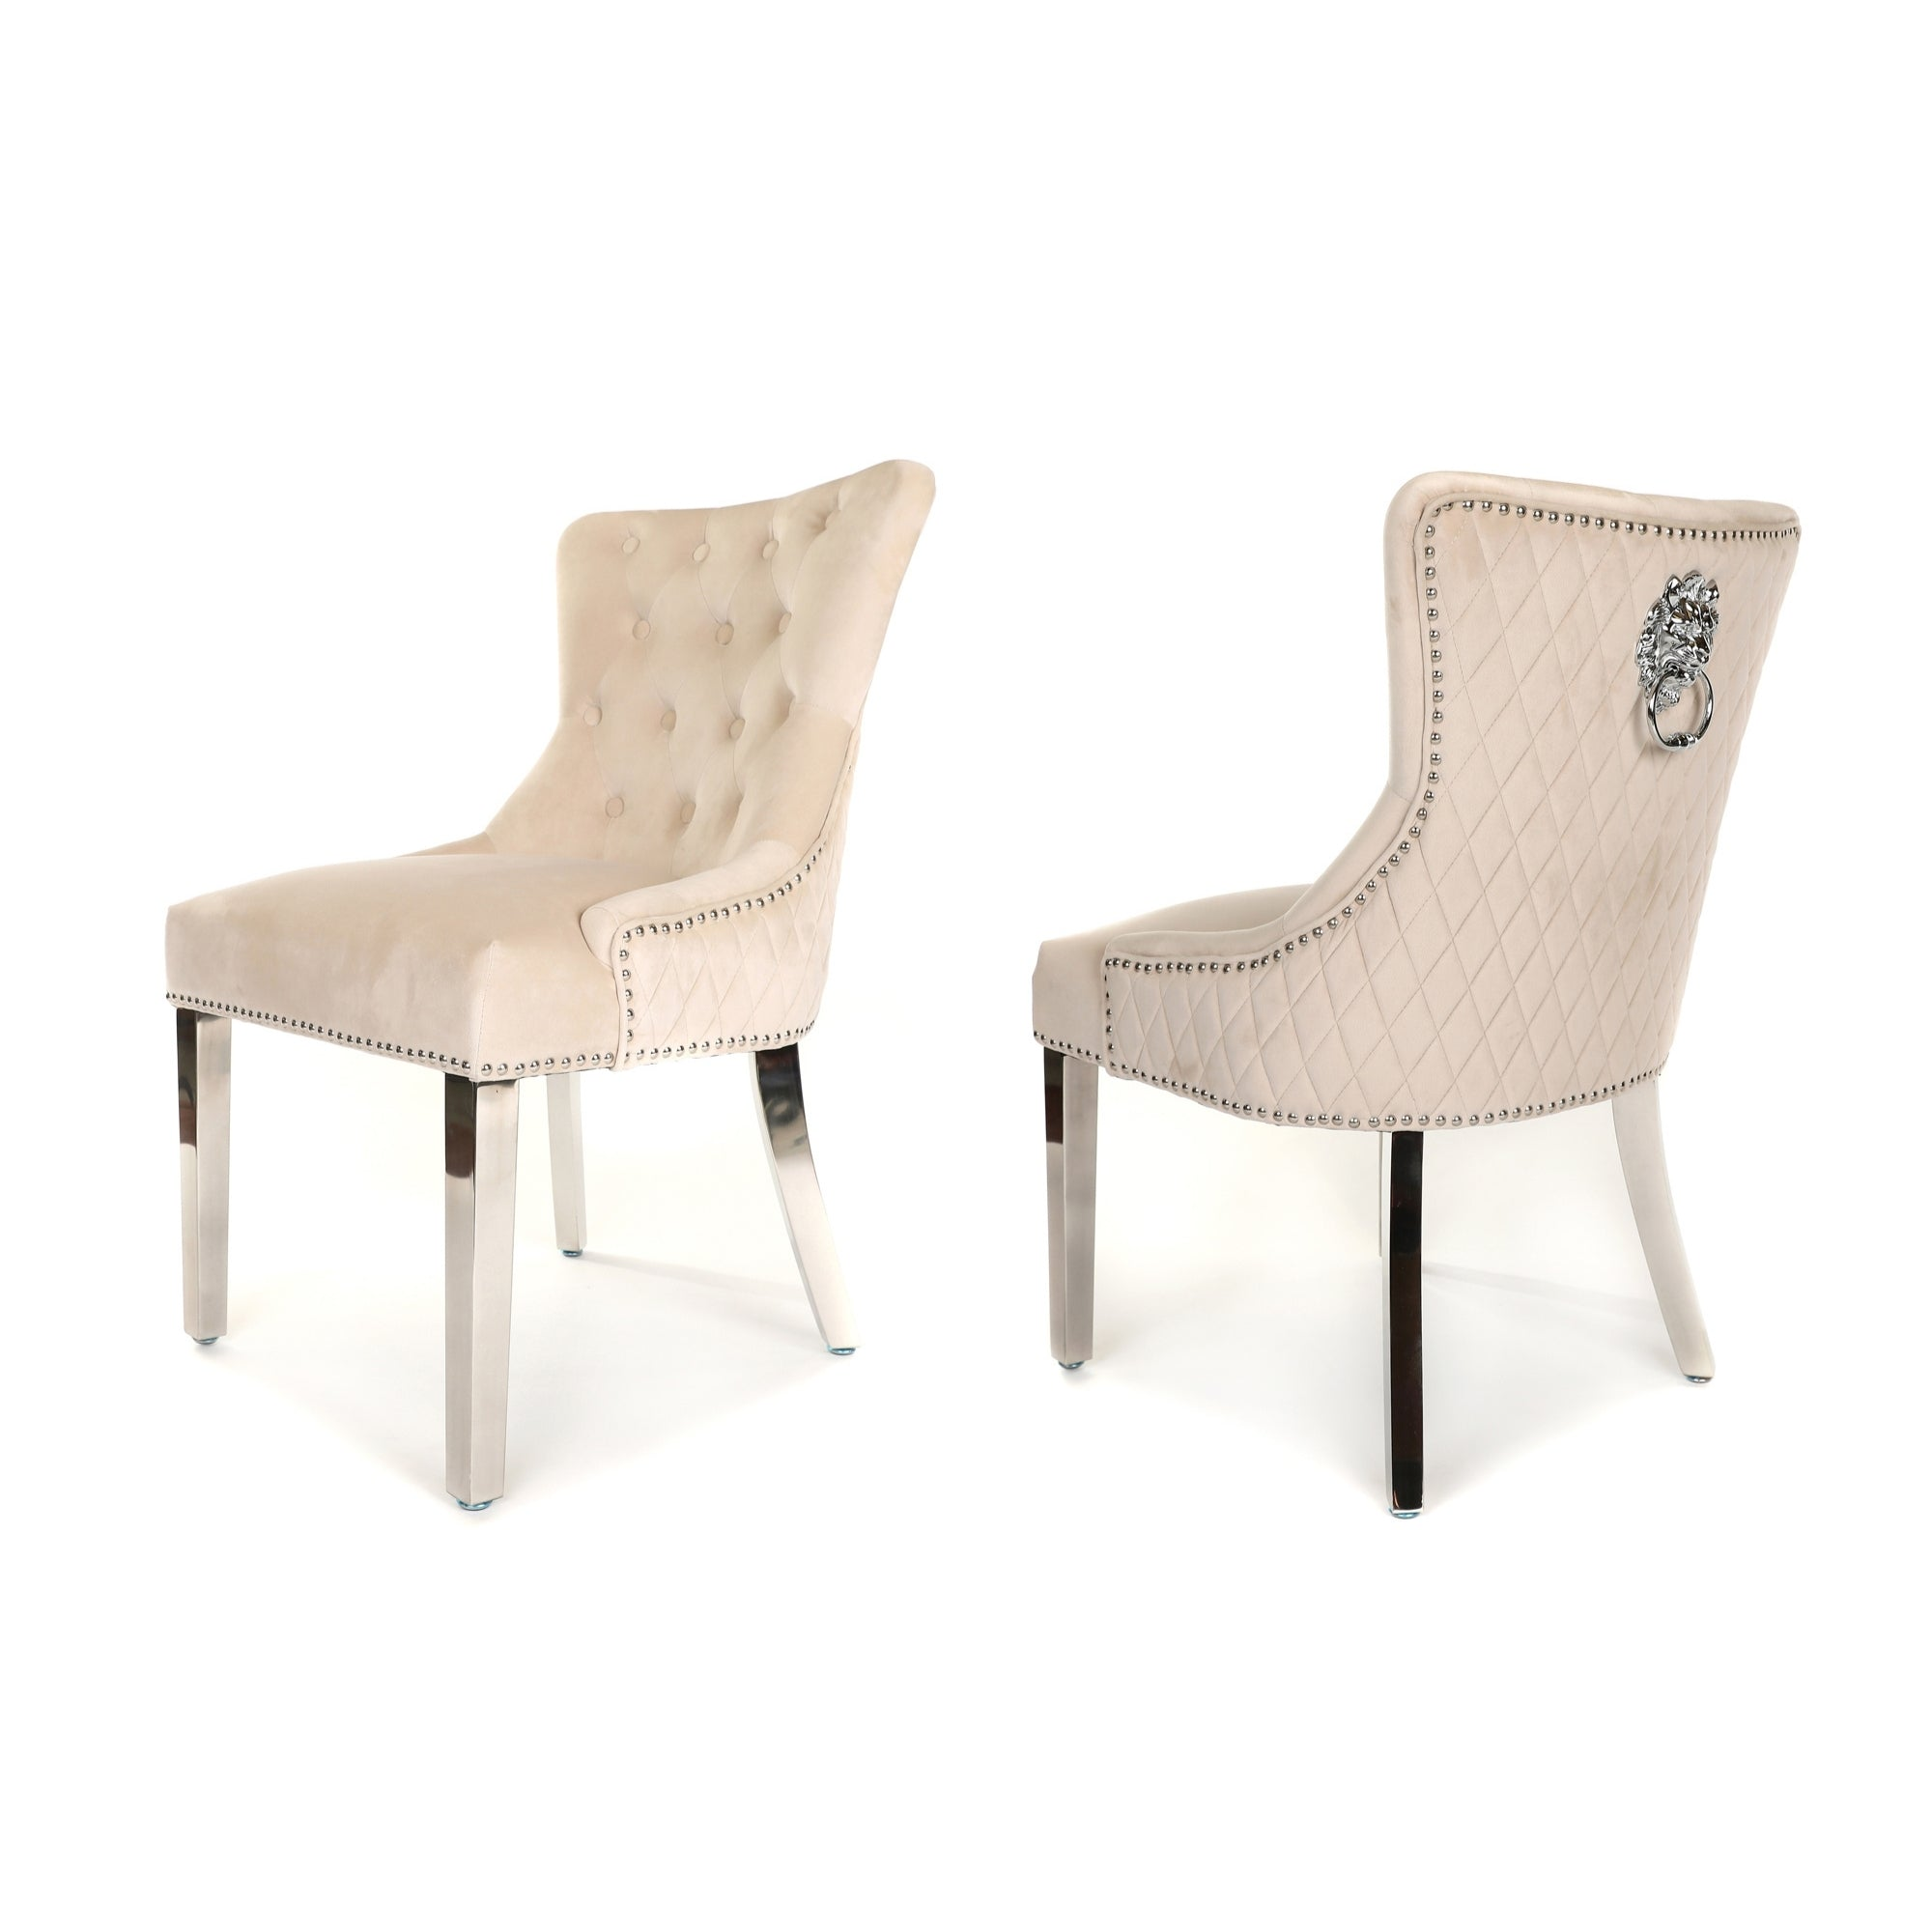 Simone Dining Chair upholstered in beige velvet with stud detail, lion knocker and metal legs